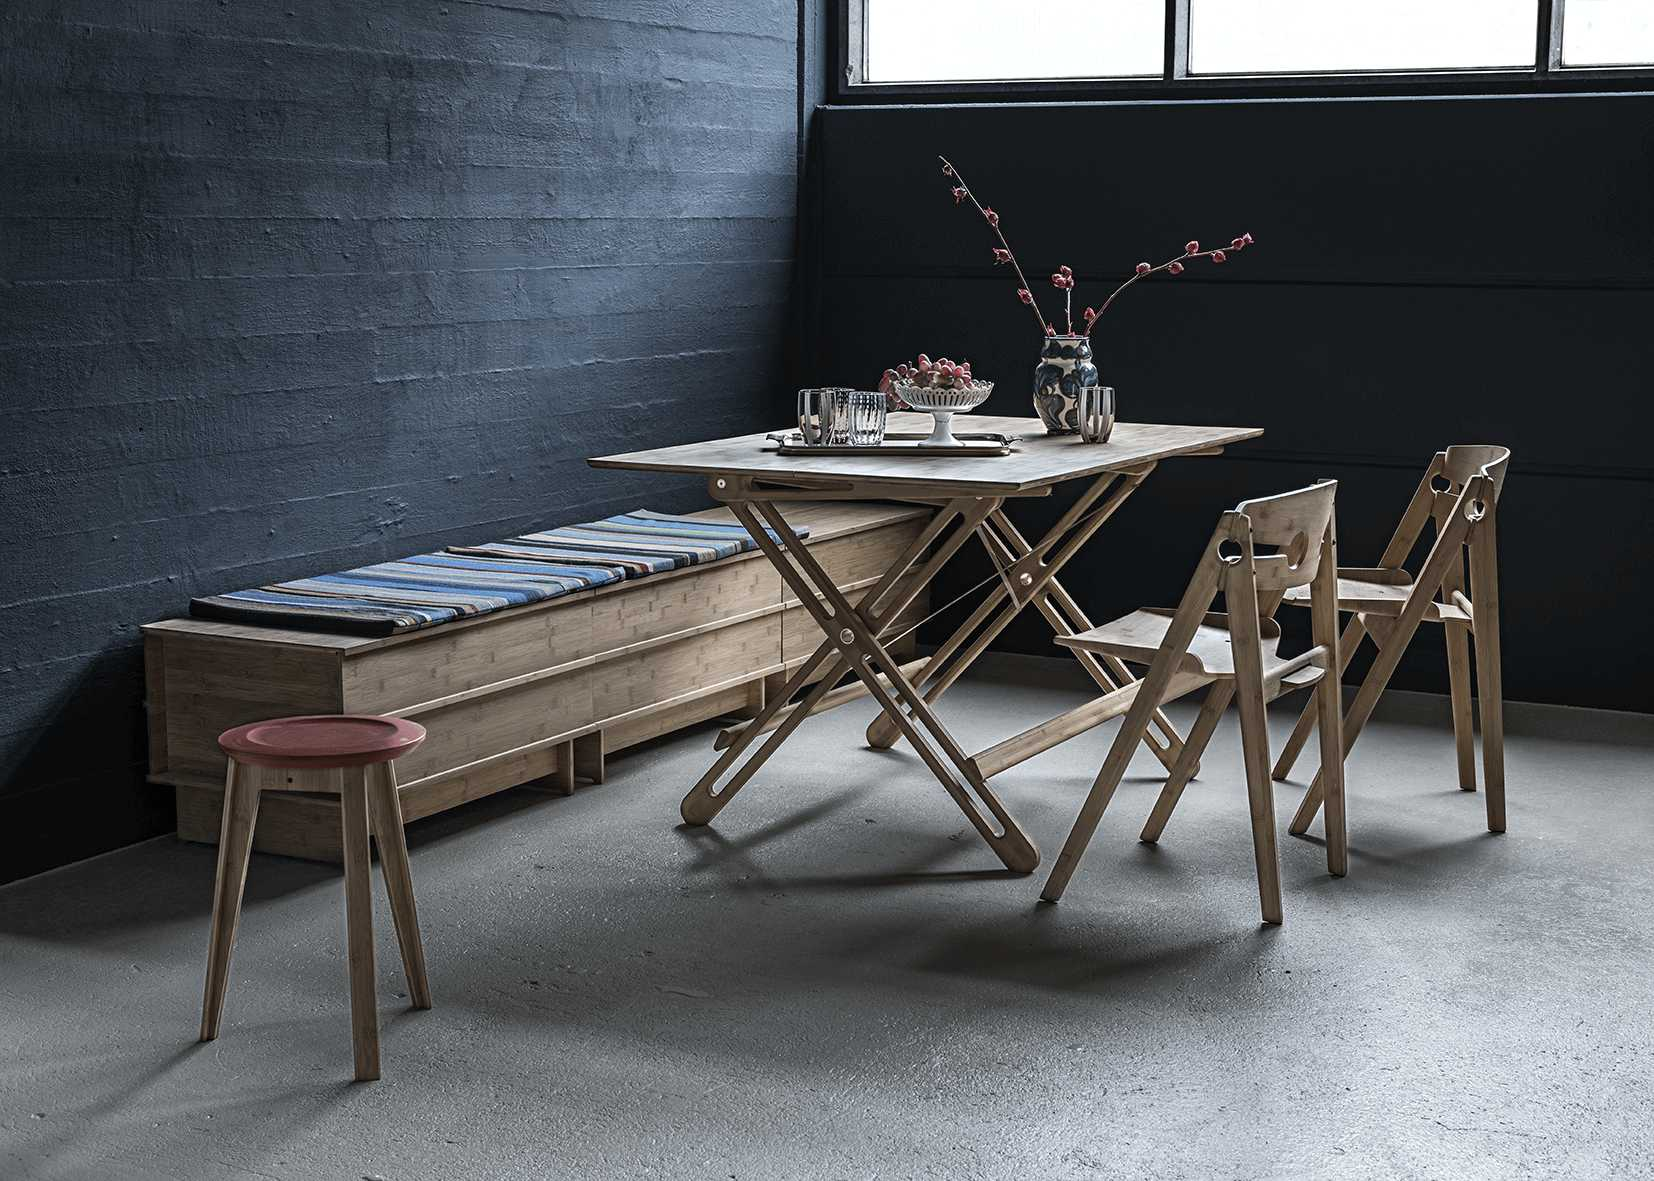 this-is-a-wooden-bench-table-and-chairs-from-We-Do-Wood.-Beautiful-creations-made-of-recycled-and-eco-friendly-materials-such-as-bamboo